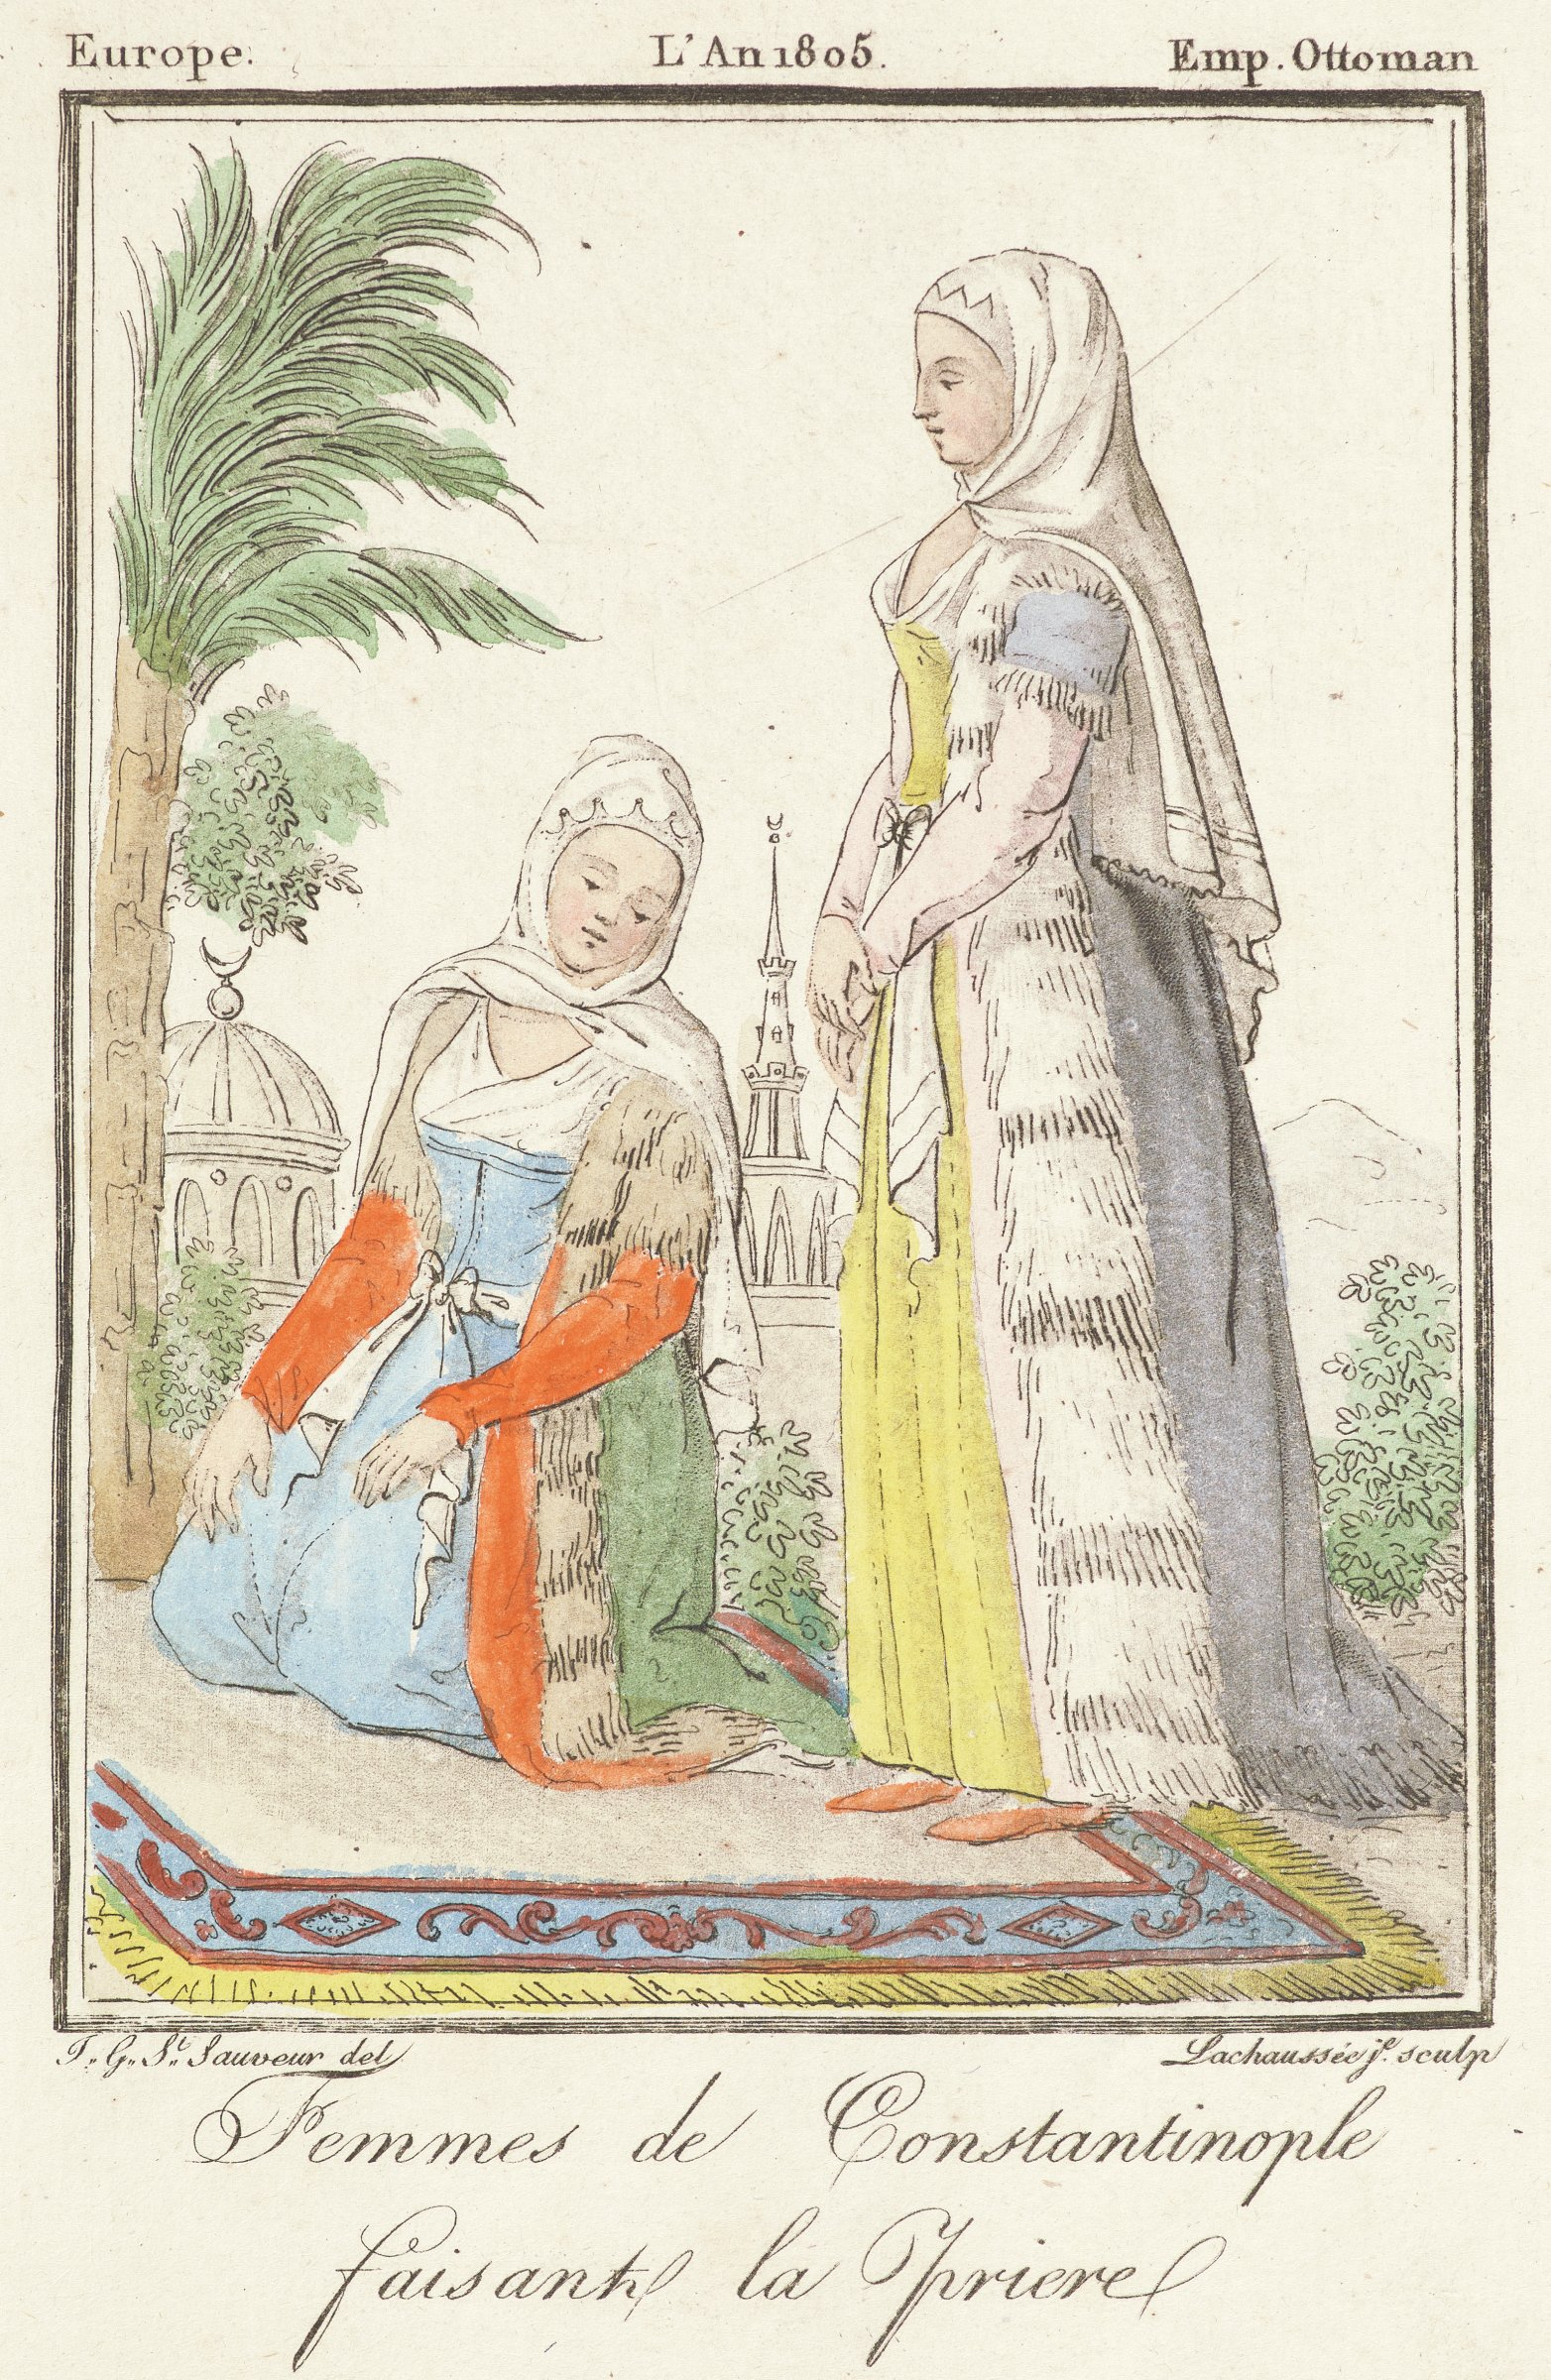 Two women are depicted standing on an ornate rug with architectural structures in the background. The woman on the left sits on her knees. Her head is bent slightly downwards. The woman on the right stands in profile view with her hands crossed infront of her.